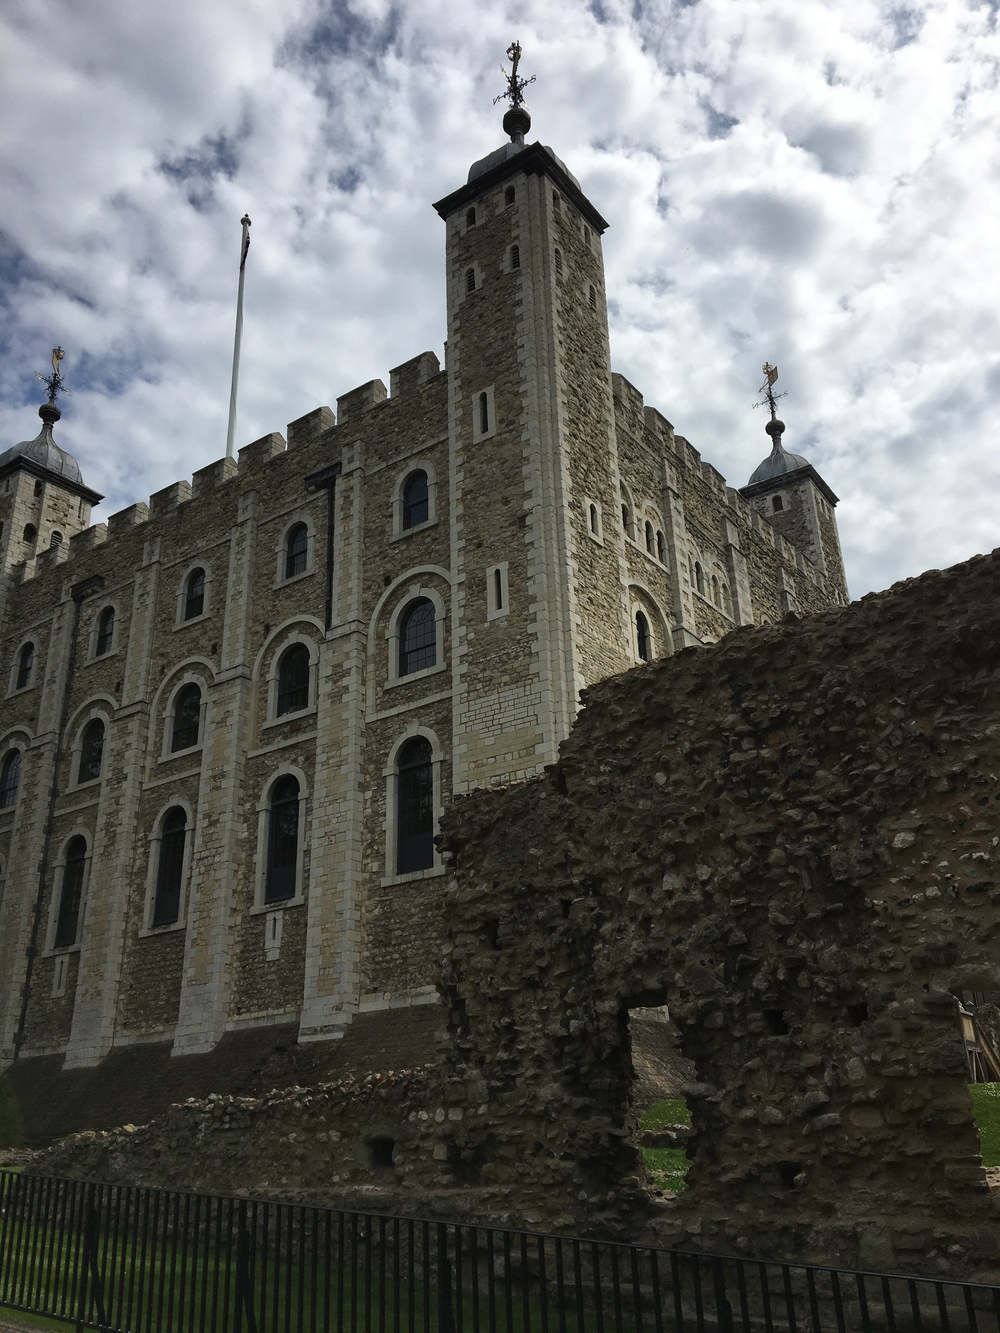 The White Tower and a piece of the original wall